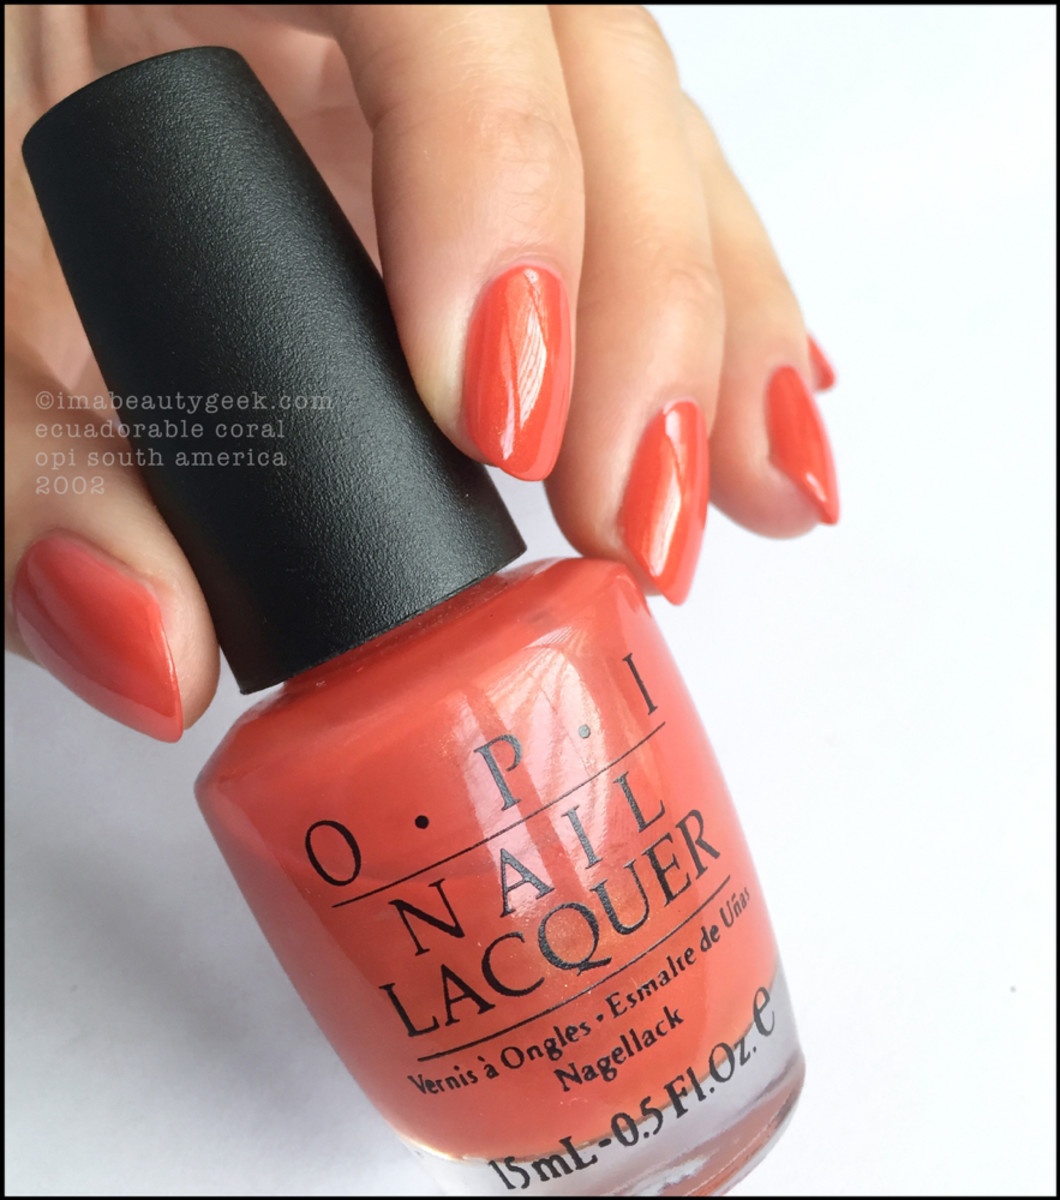 OPI Ecuadorable Coral South America Collection 2002 Black Label OPI